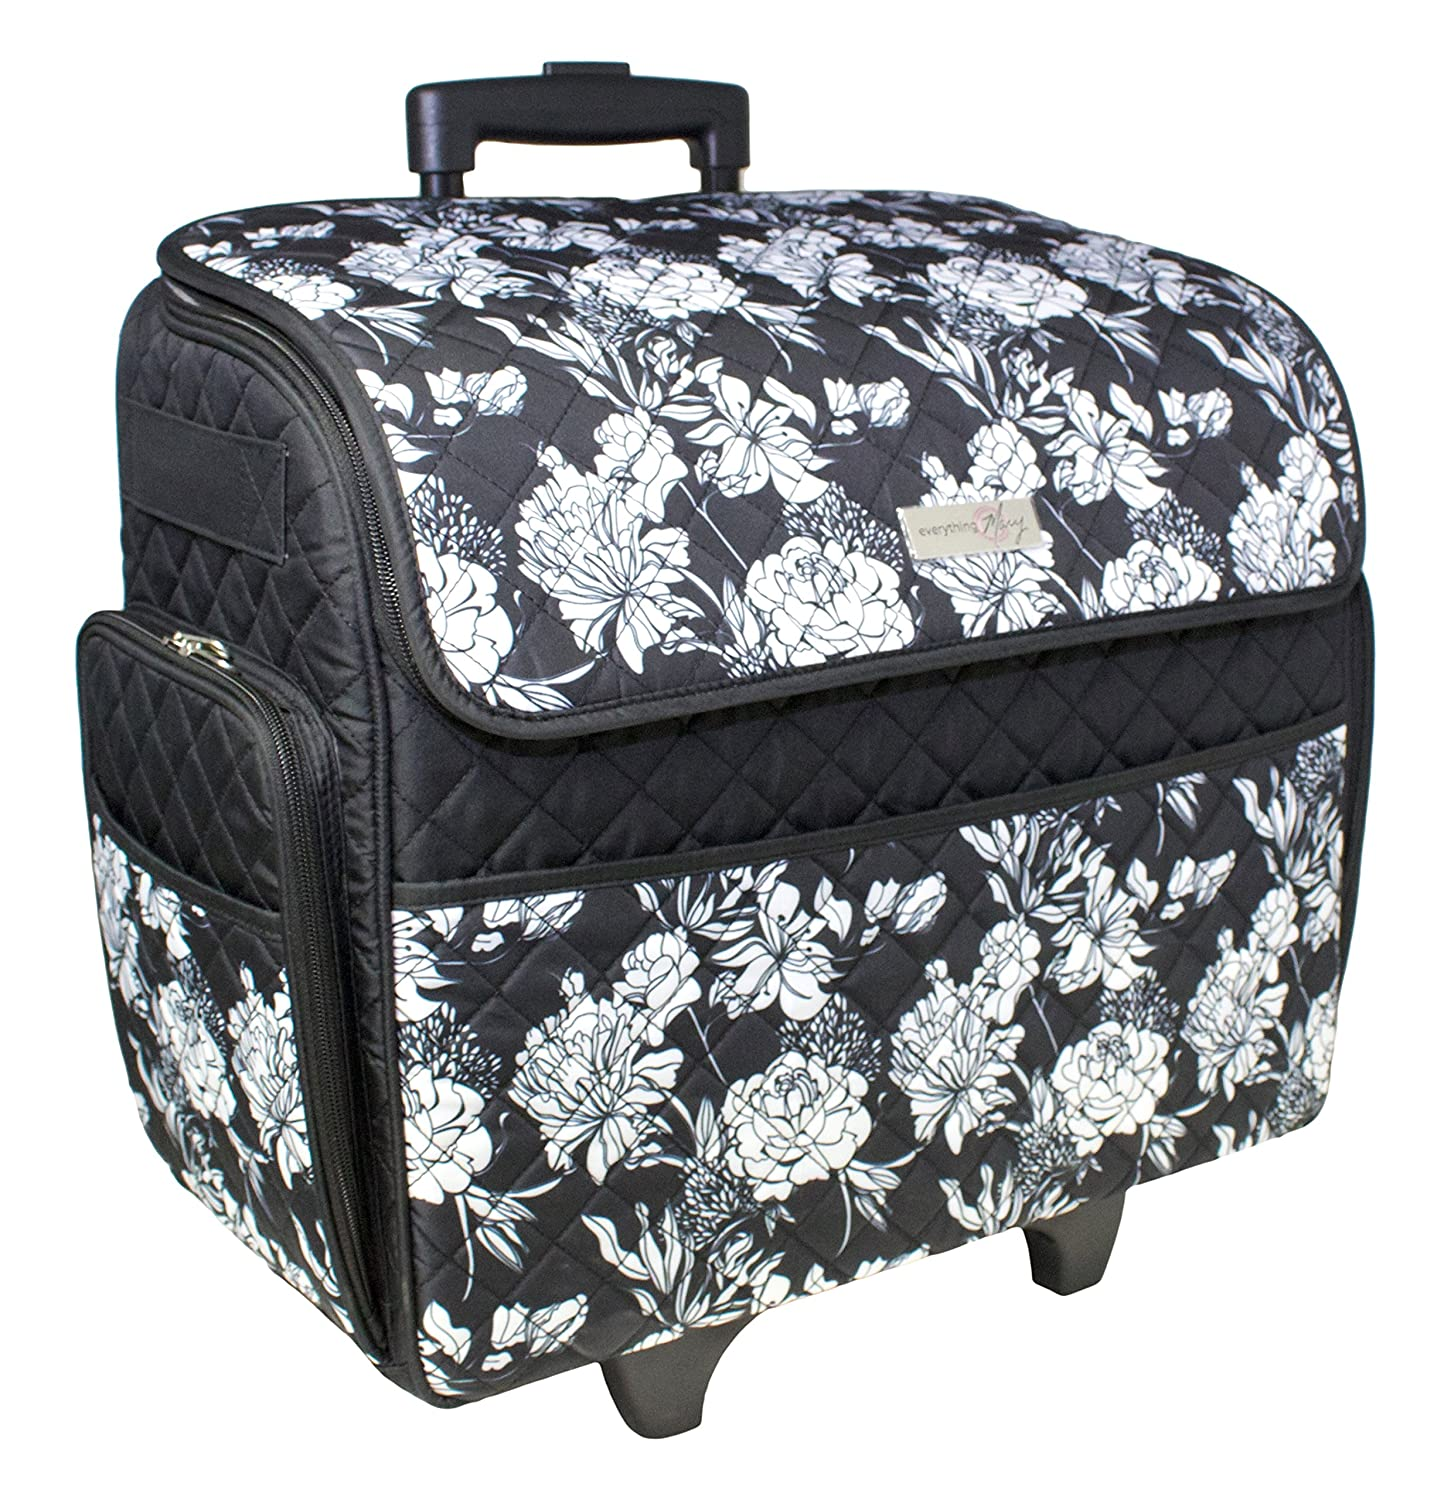 Everything Mary Quilted Sewing Machine Rolling Tote-18-inch x 9-inch x 18-inch Black and White EVM10130-1